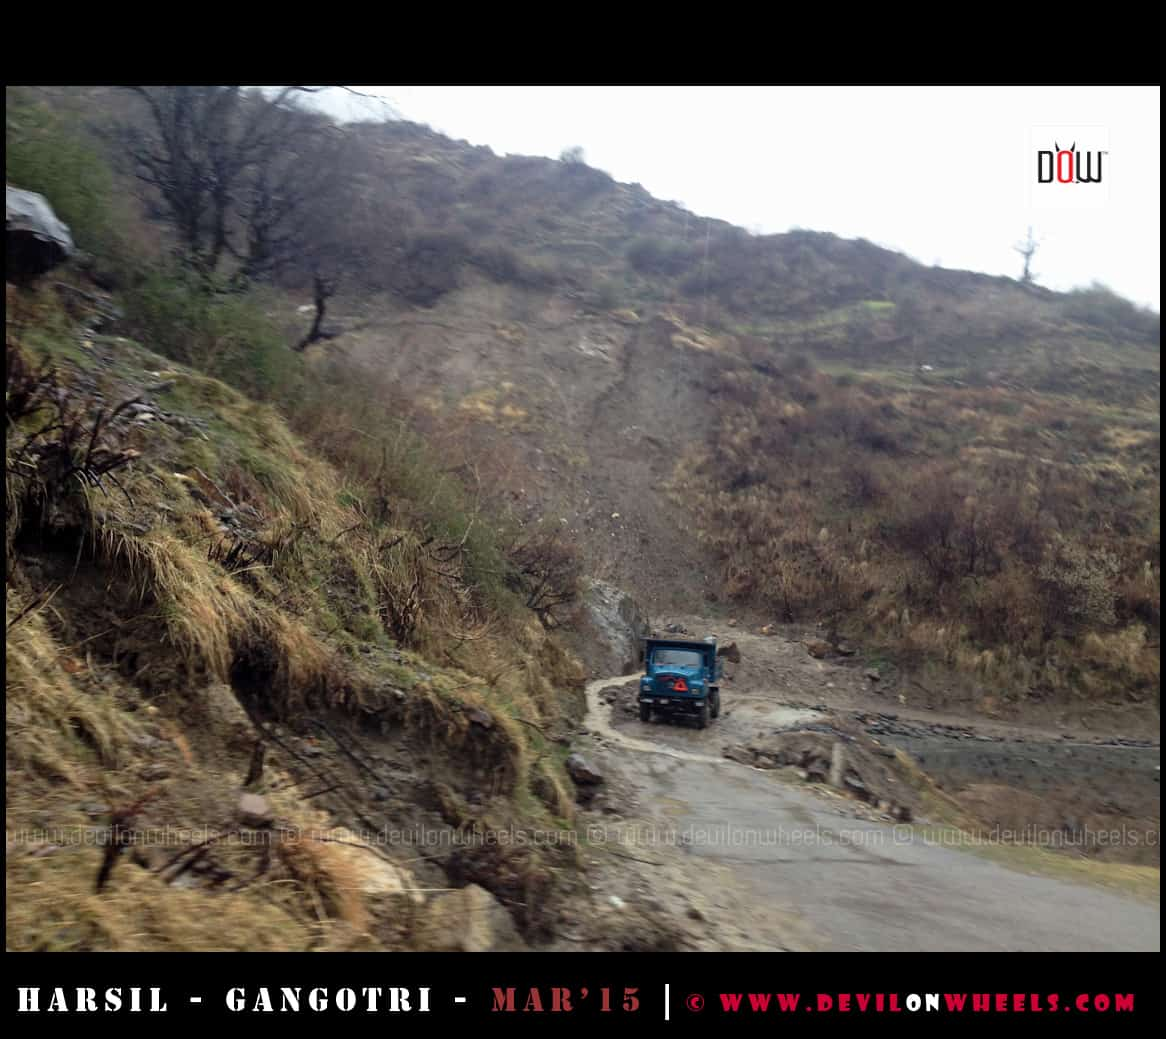 The Roads to Harsil - Gangotri